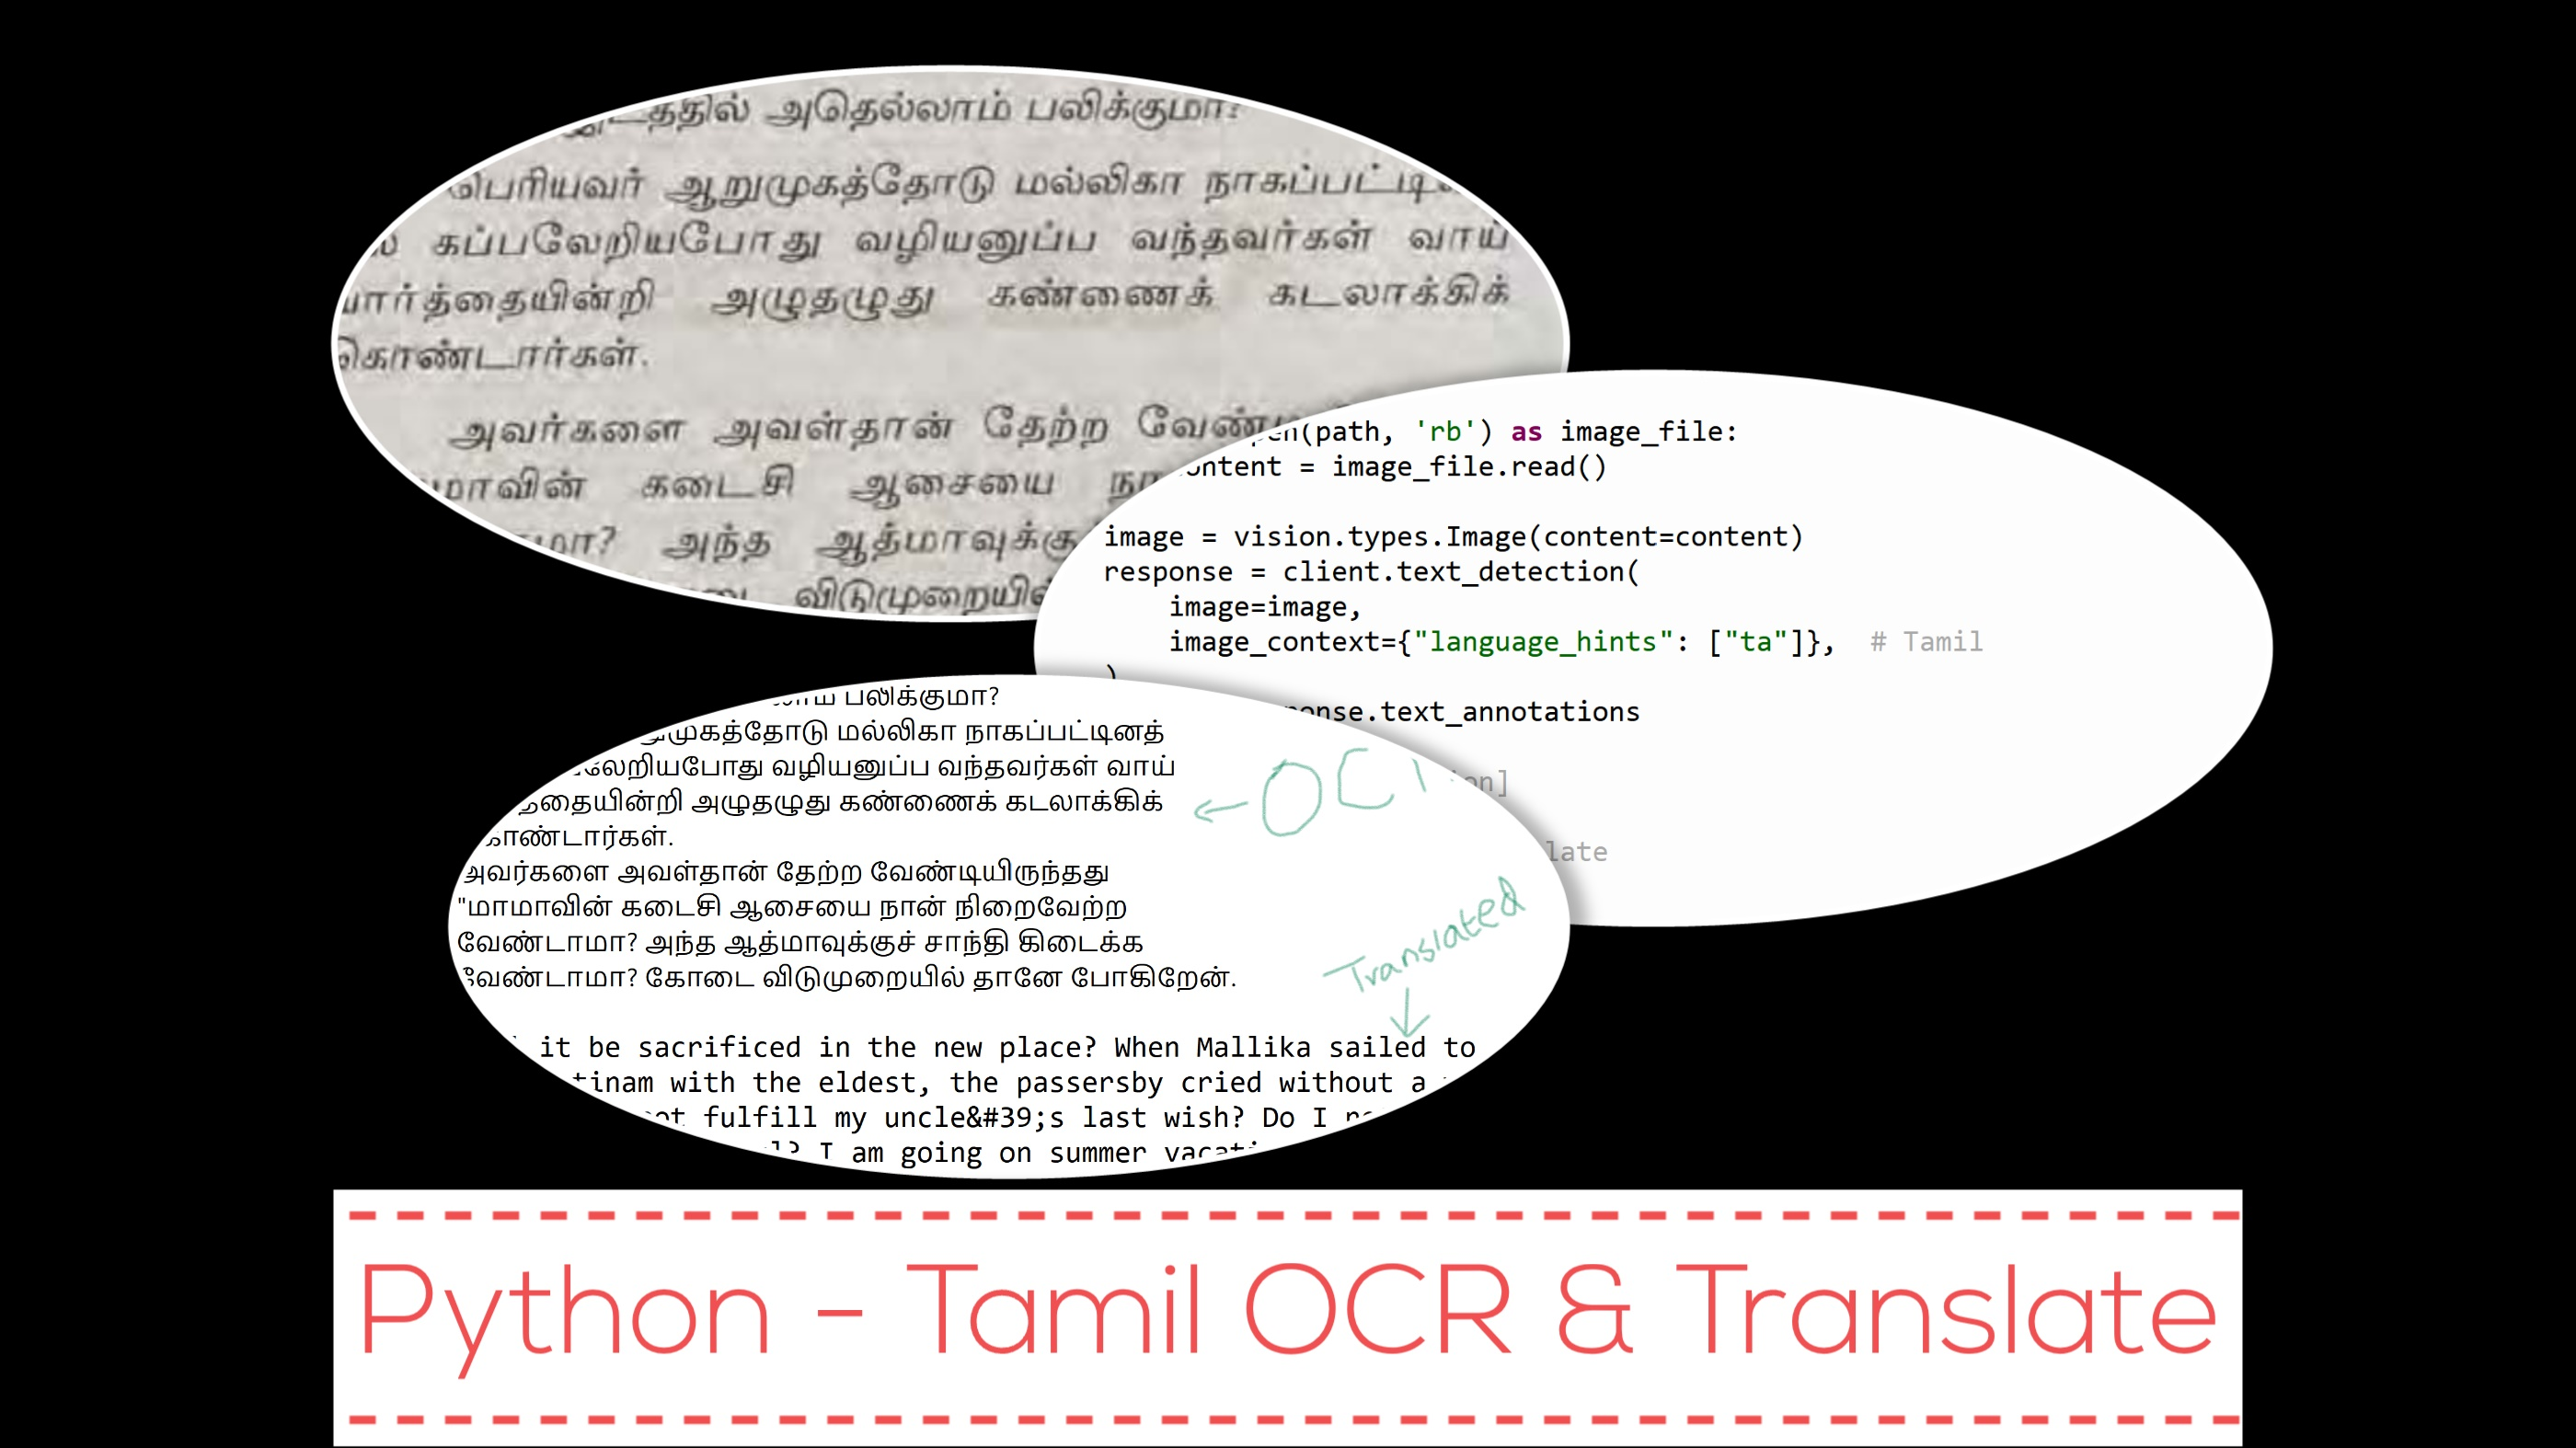 Python - Tamil OCR and Translate